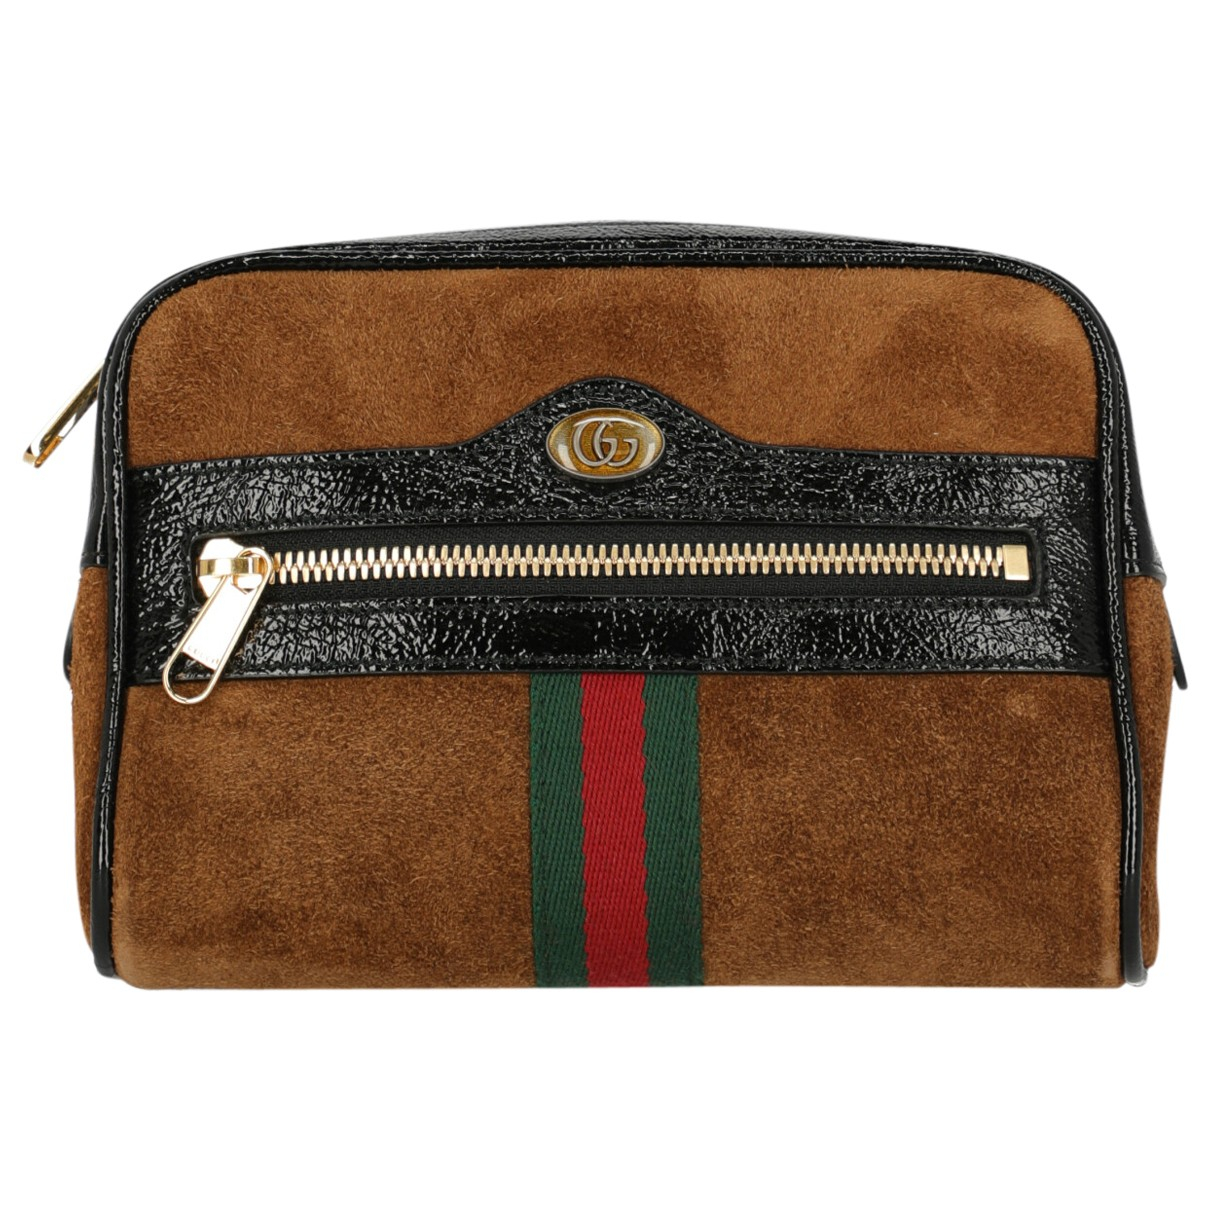 Gucci Ophidia Brown Leather handbag for Women \N